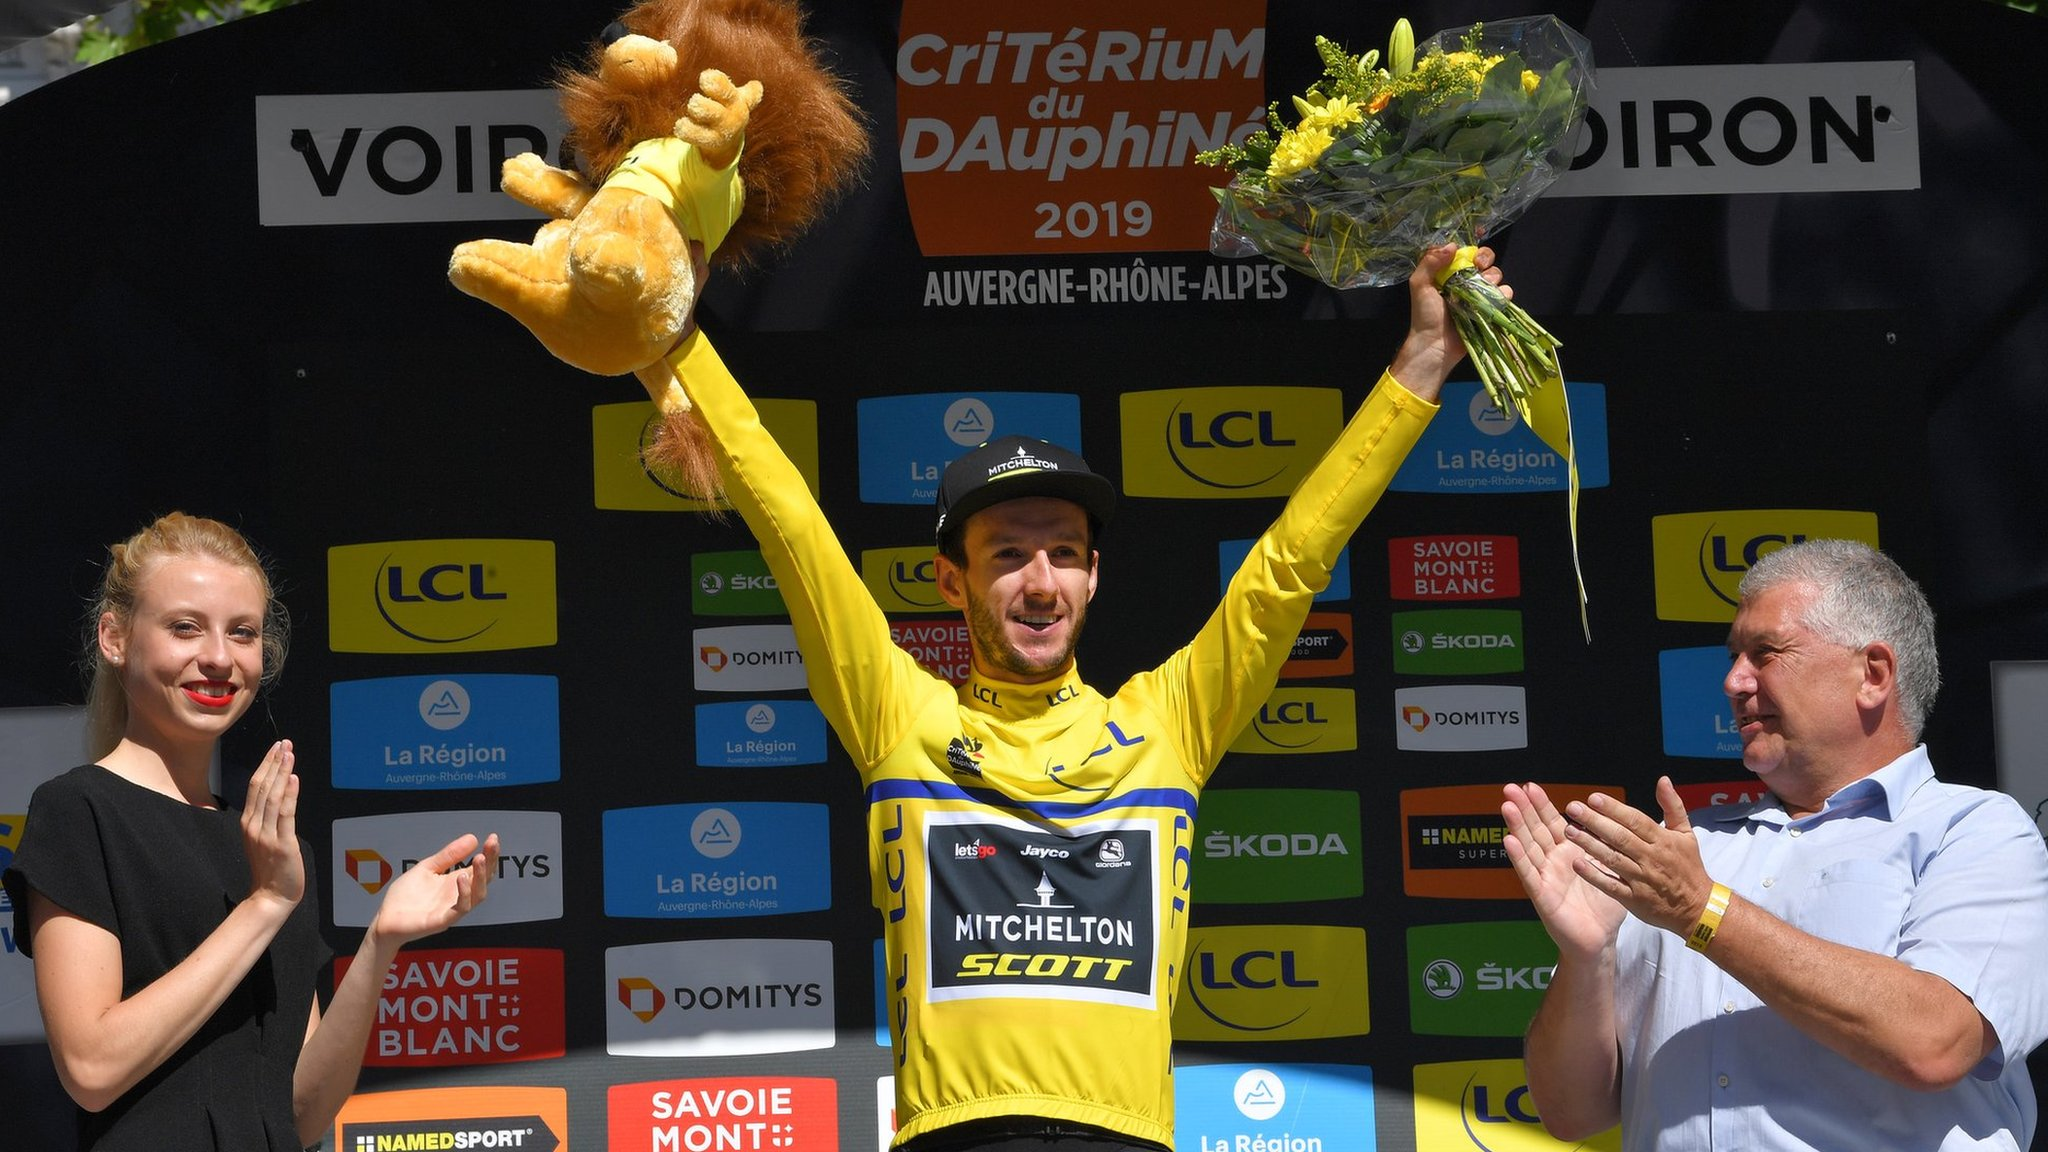 Criterium du Dauphine: Britain's Adam Yates retains lead after fifth stage